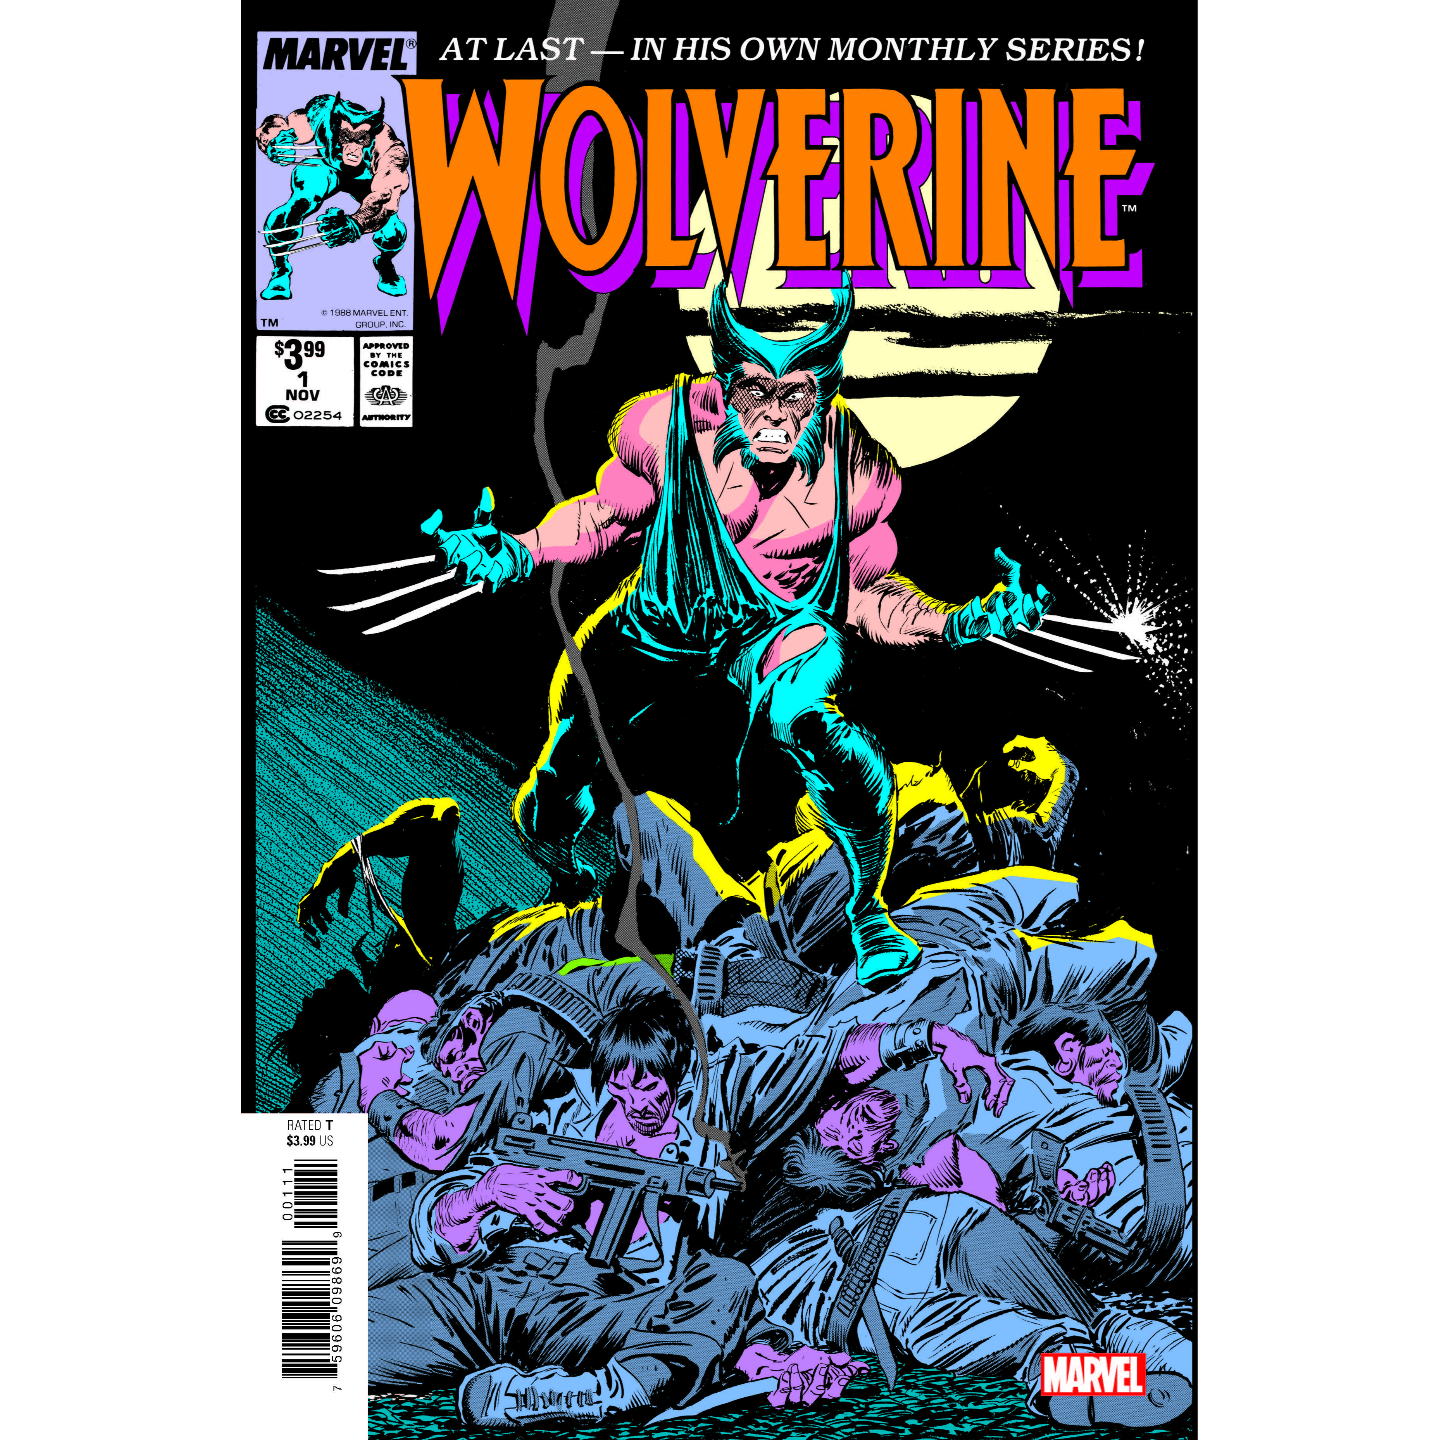 WOLVERINE BY CLAREMONT & BUSCEMA 1 FACSIMILE EDITION